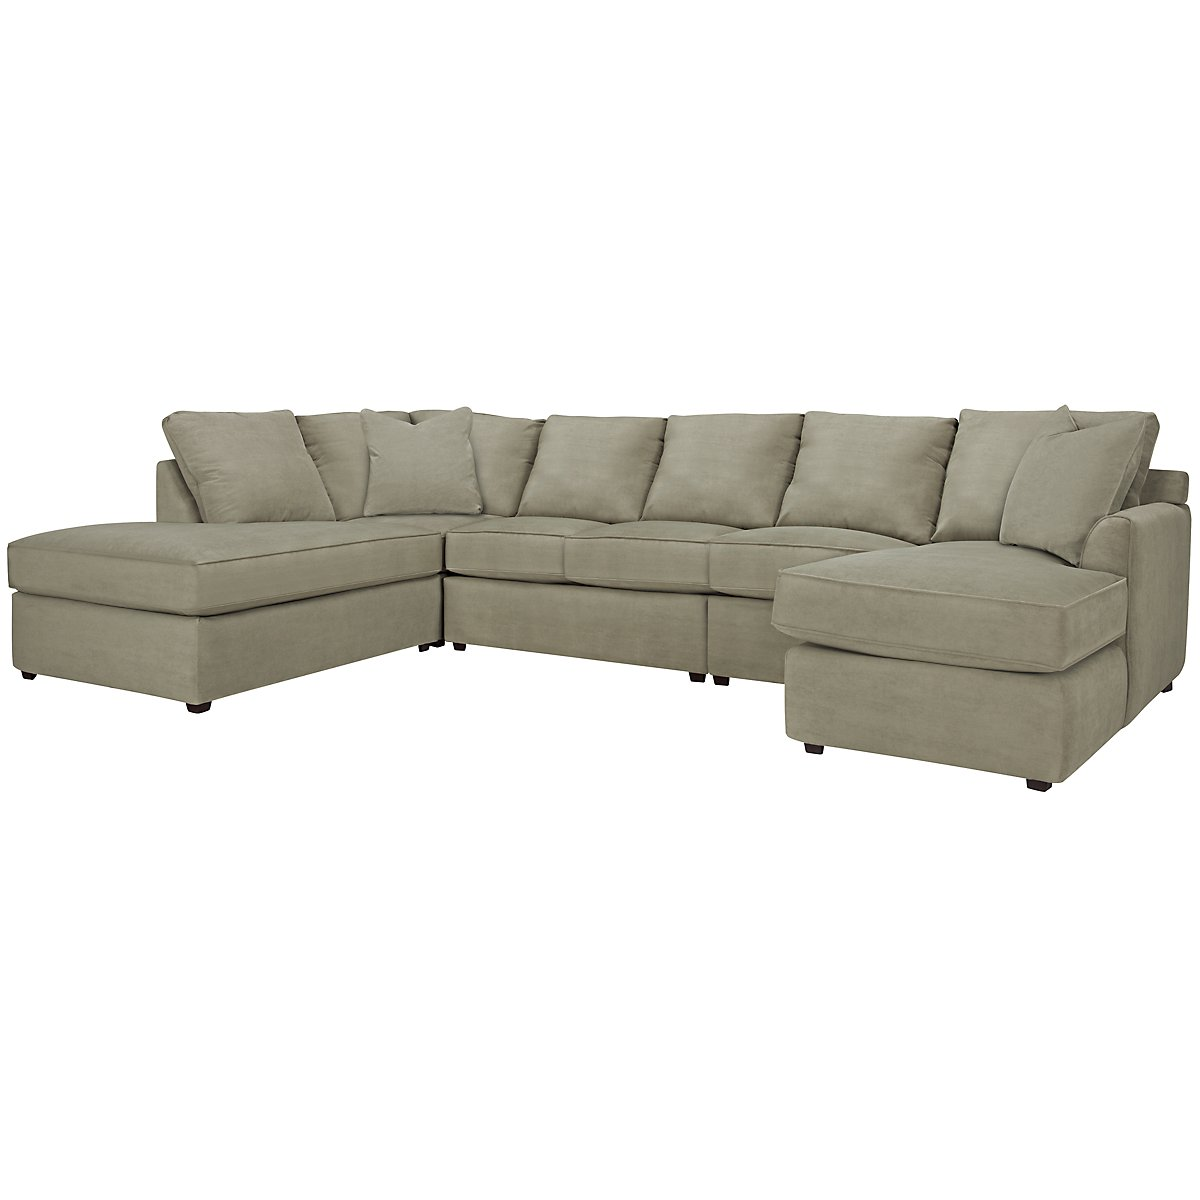 Express3 Lt Green Microfiber Large Left Bumper Sectional